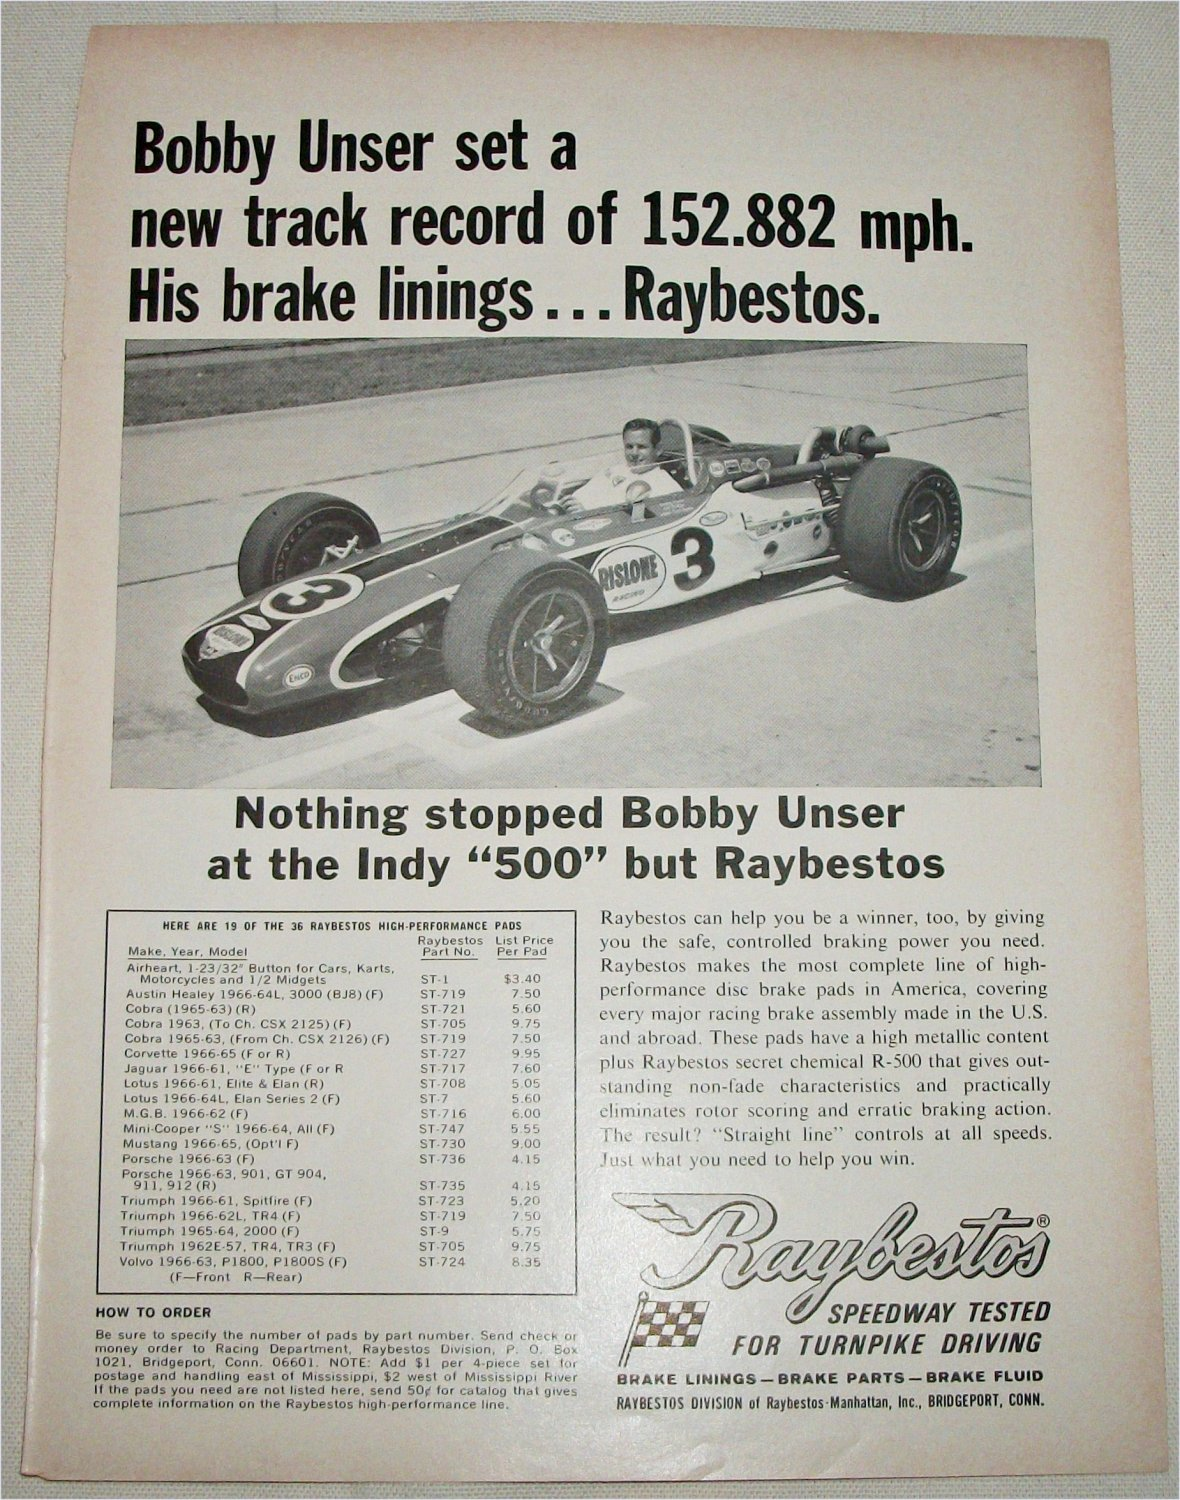 1968 Raybestos Brakes ad featuring Bobby Unser